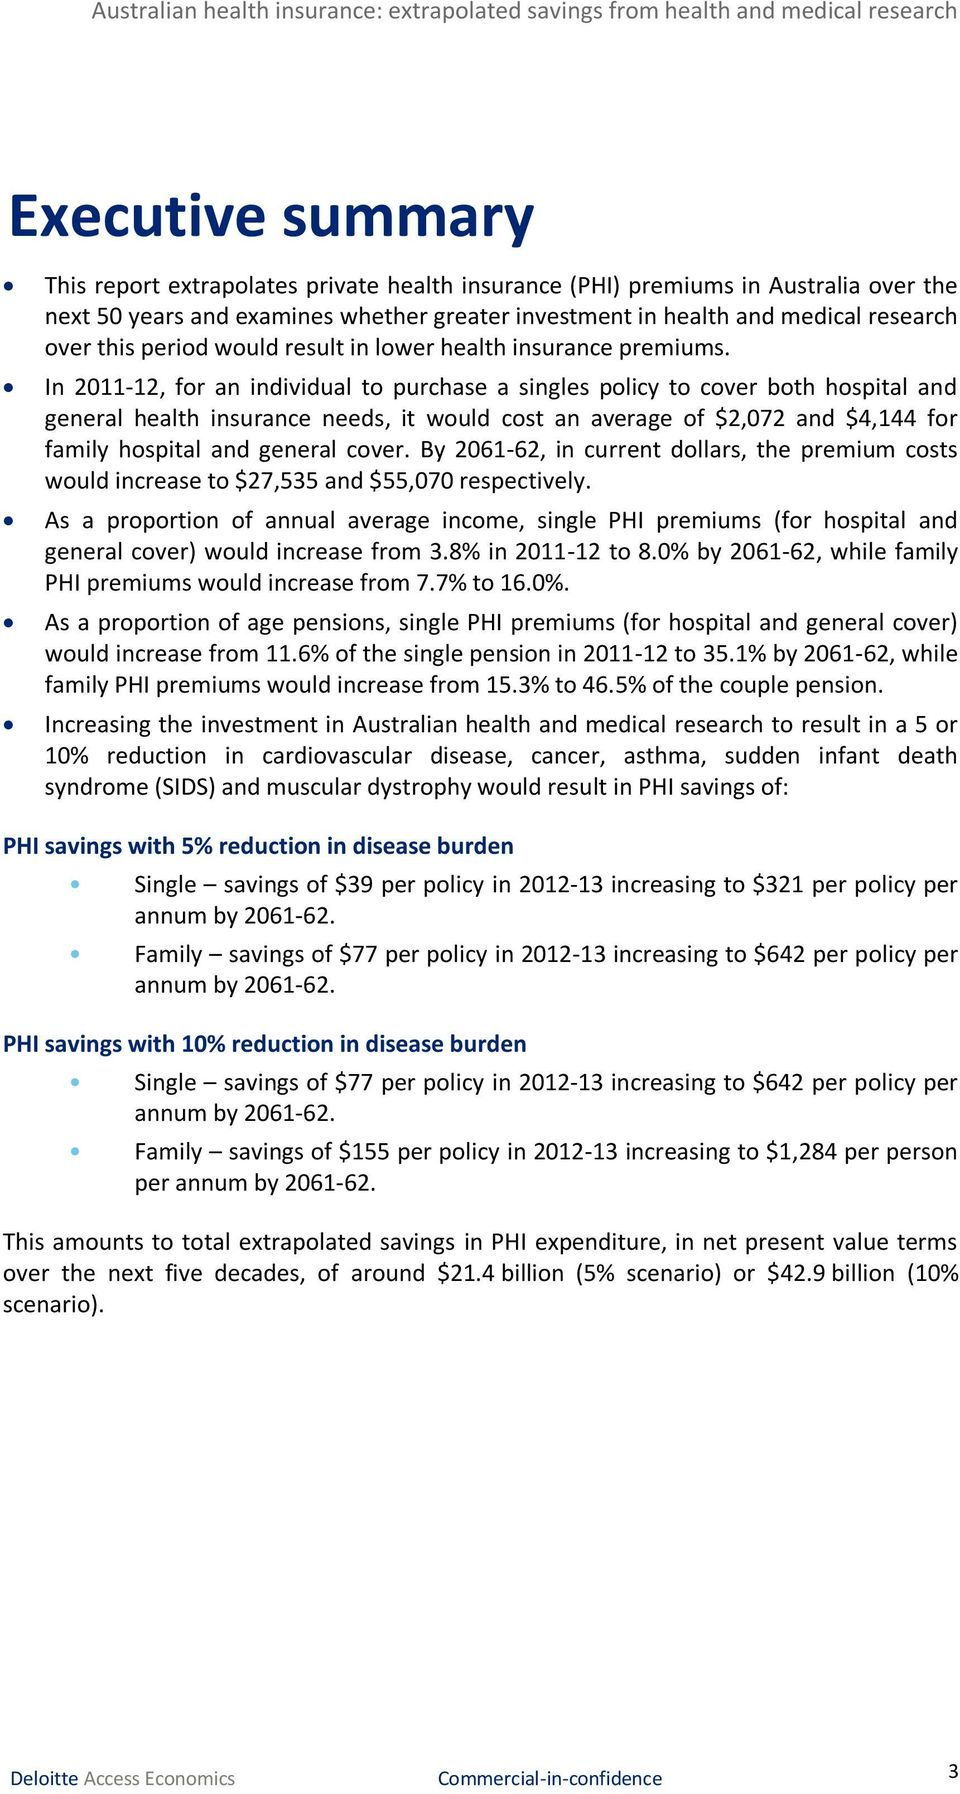 In 2011-12, for an individual to purchase a singles policy to cover both hospital and general health insurance needs, it would cost an average of $2,072 and $4,144 for family hospital and general